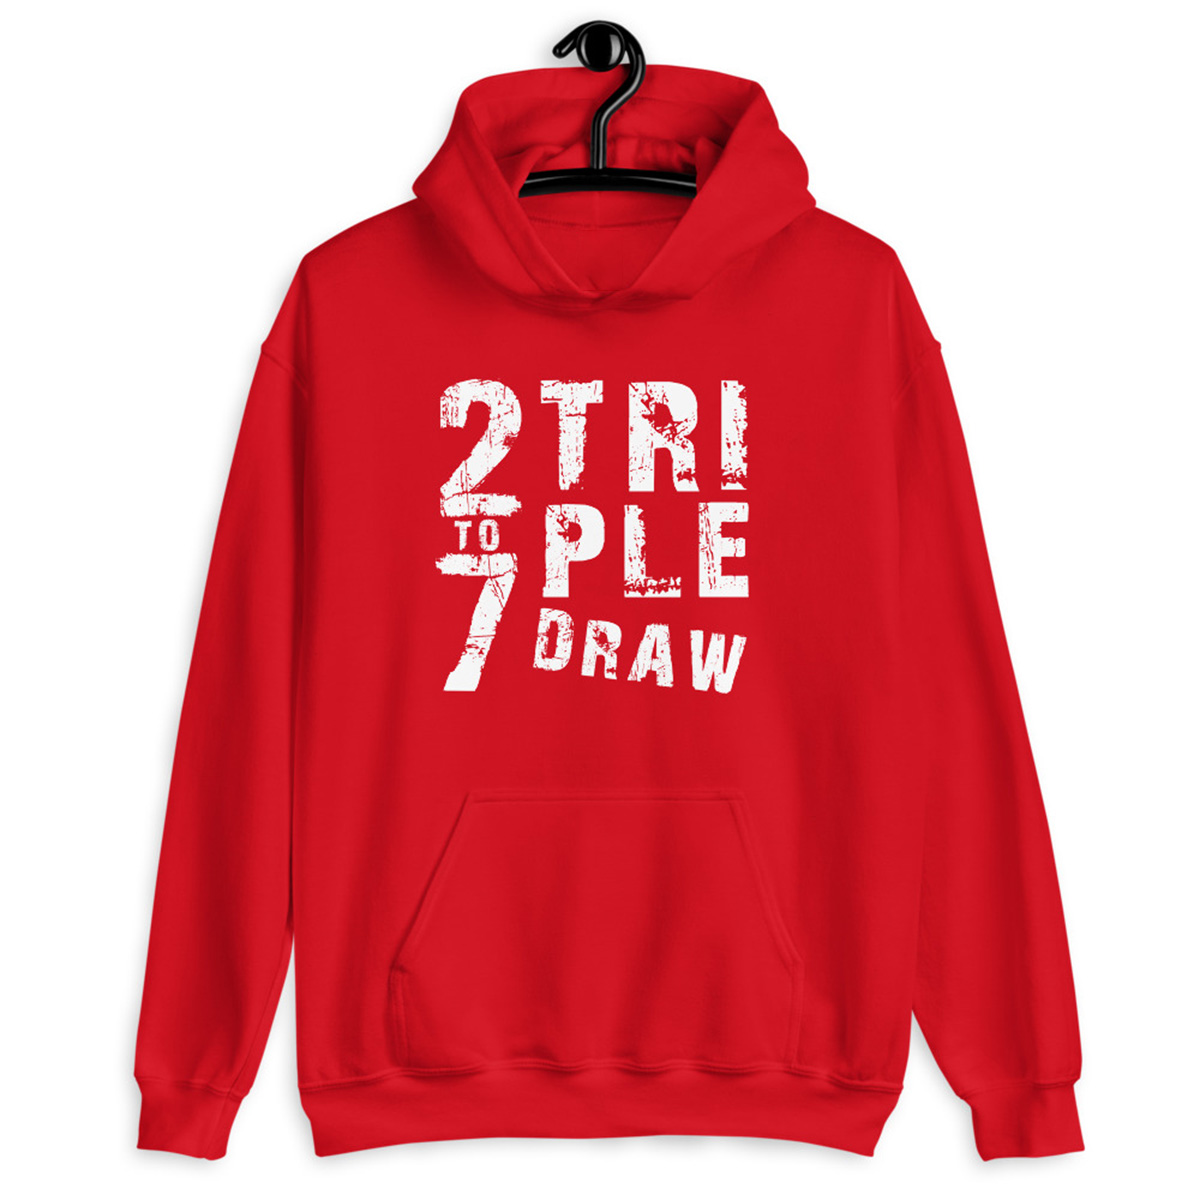 2 To 7 Triple Draw Poker Hoodie-Red